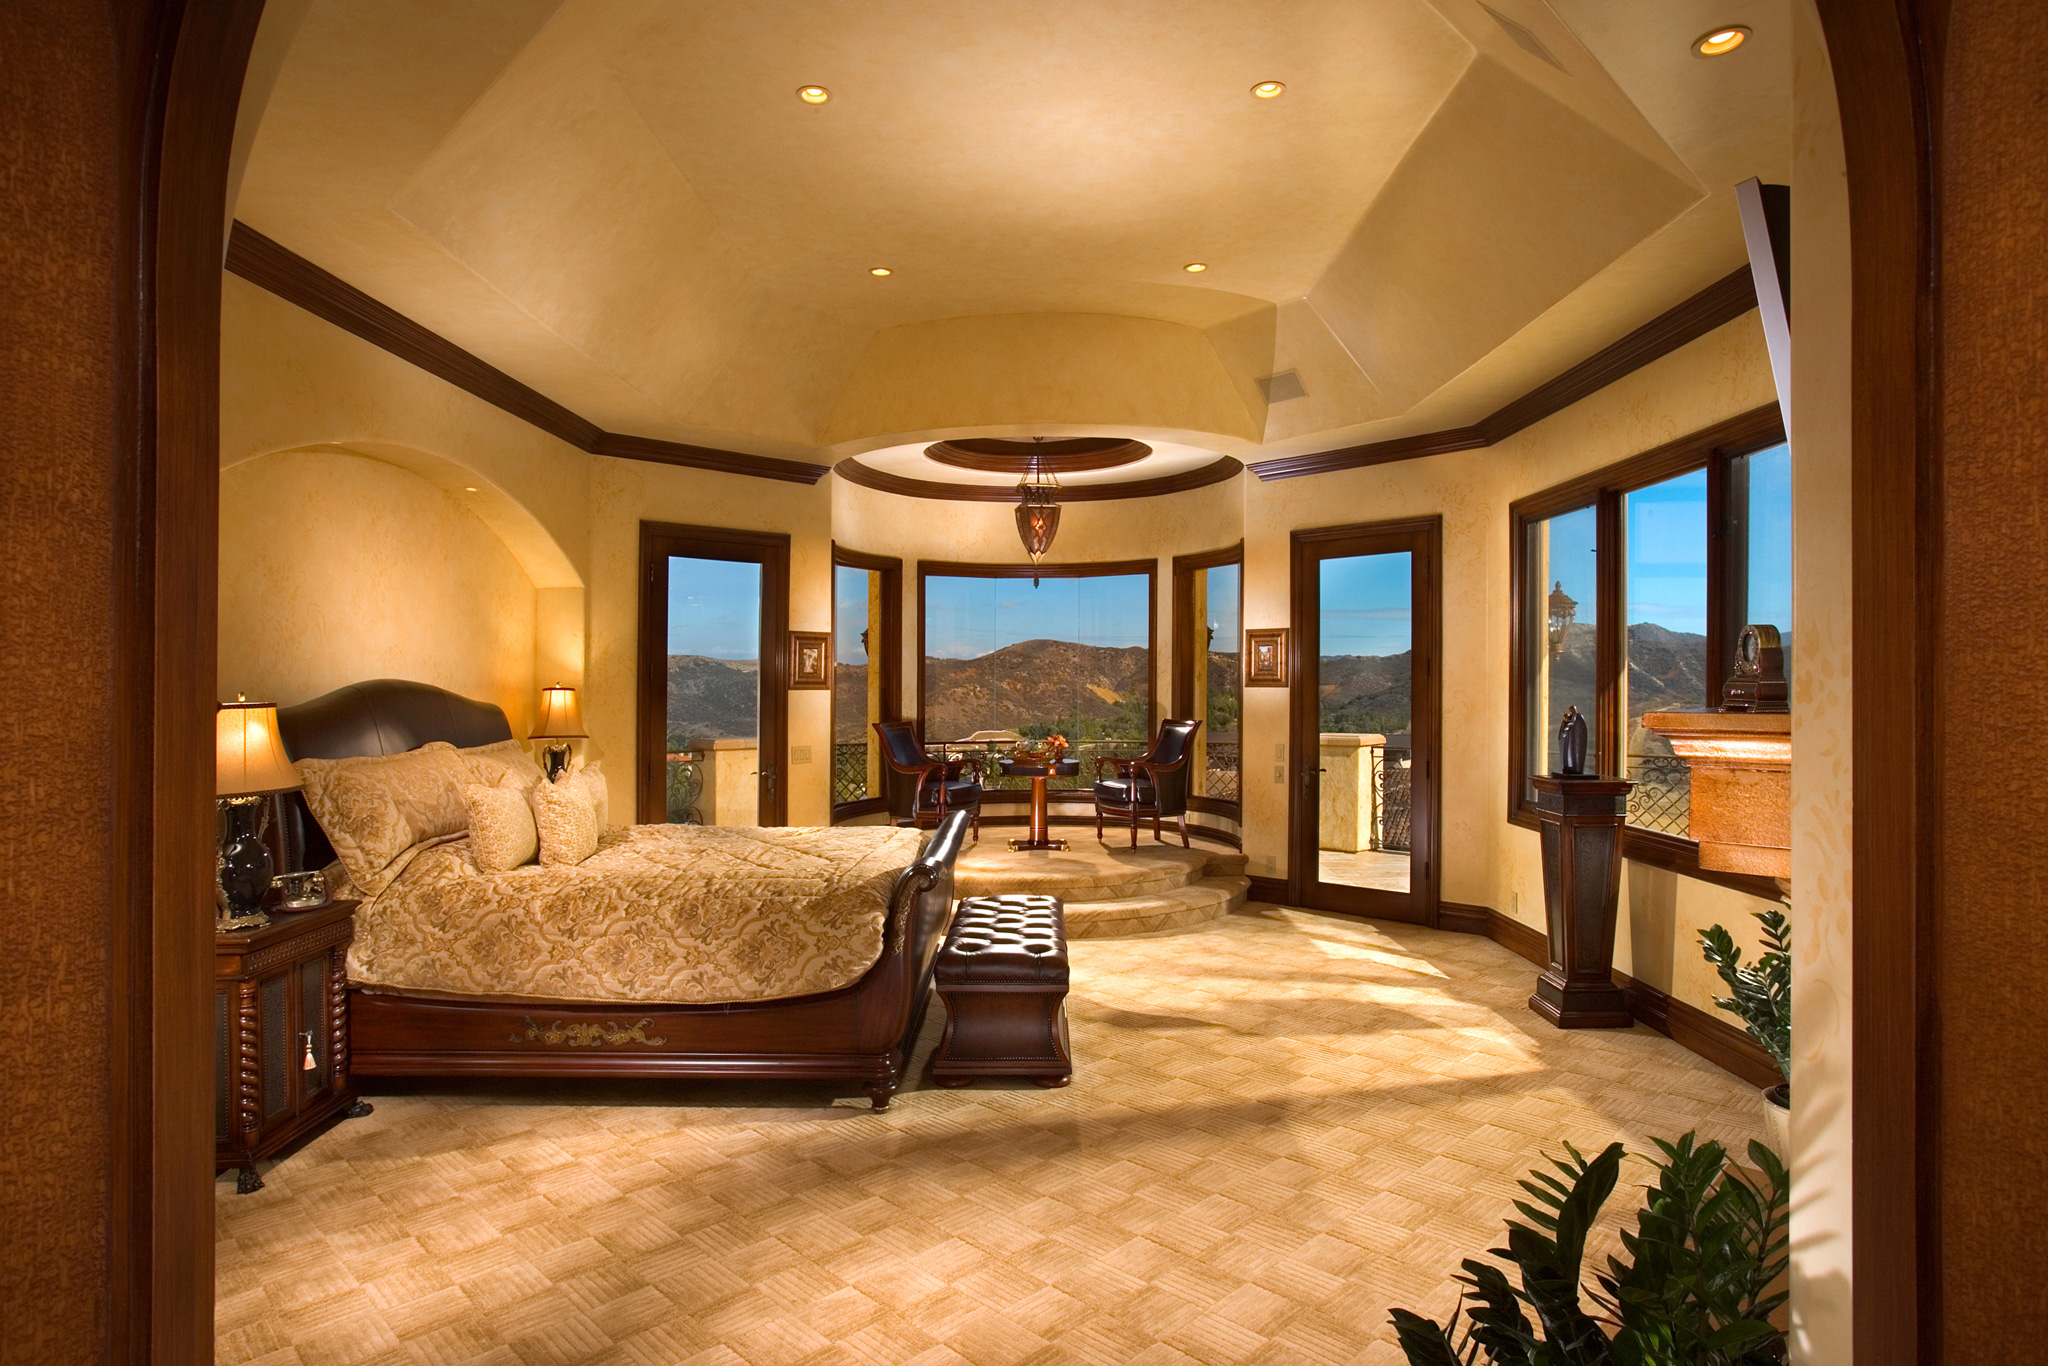 68 jaw dropping luxury master bedroom designs home garden sphere - Luxury bedroom design ...